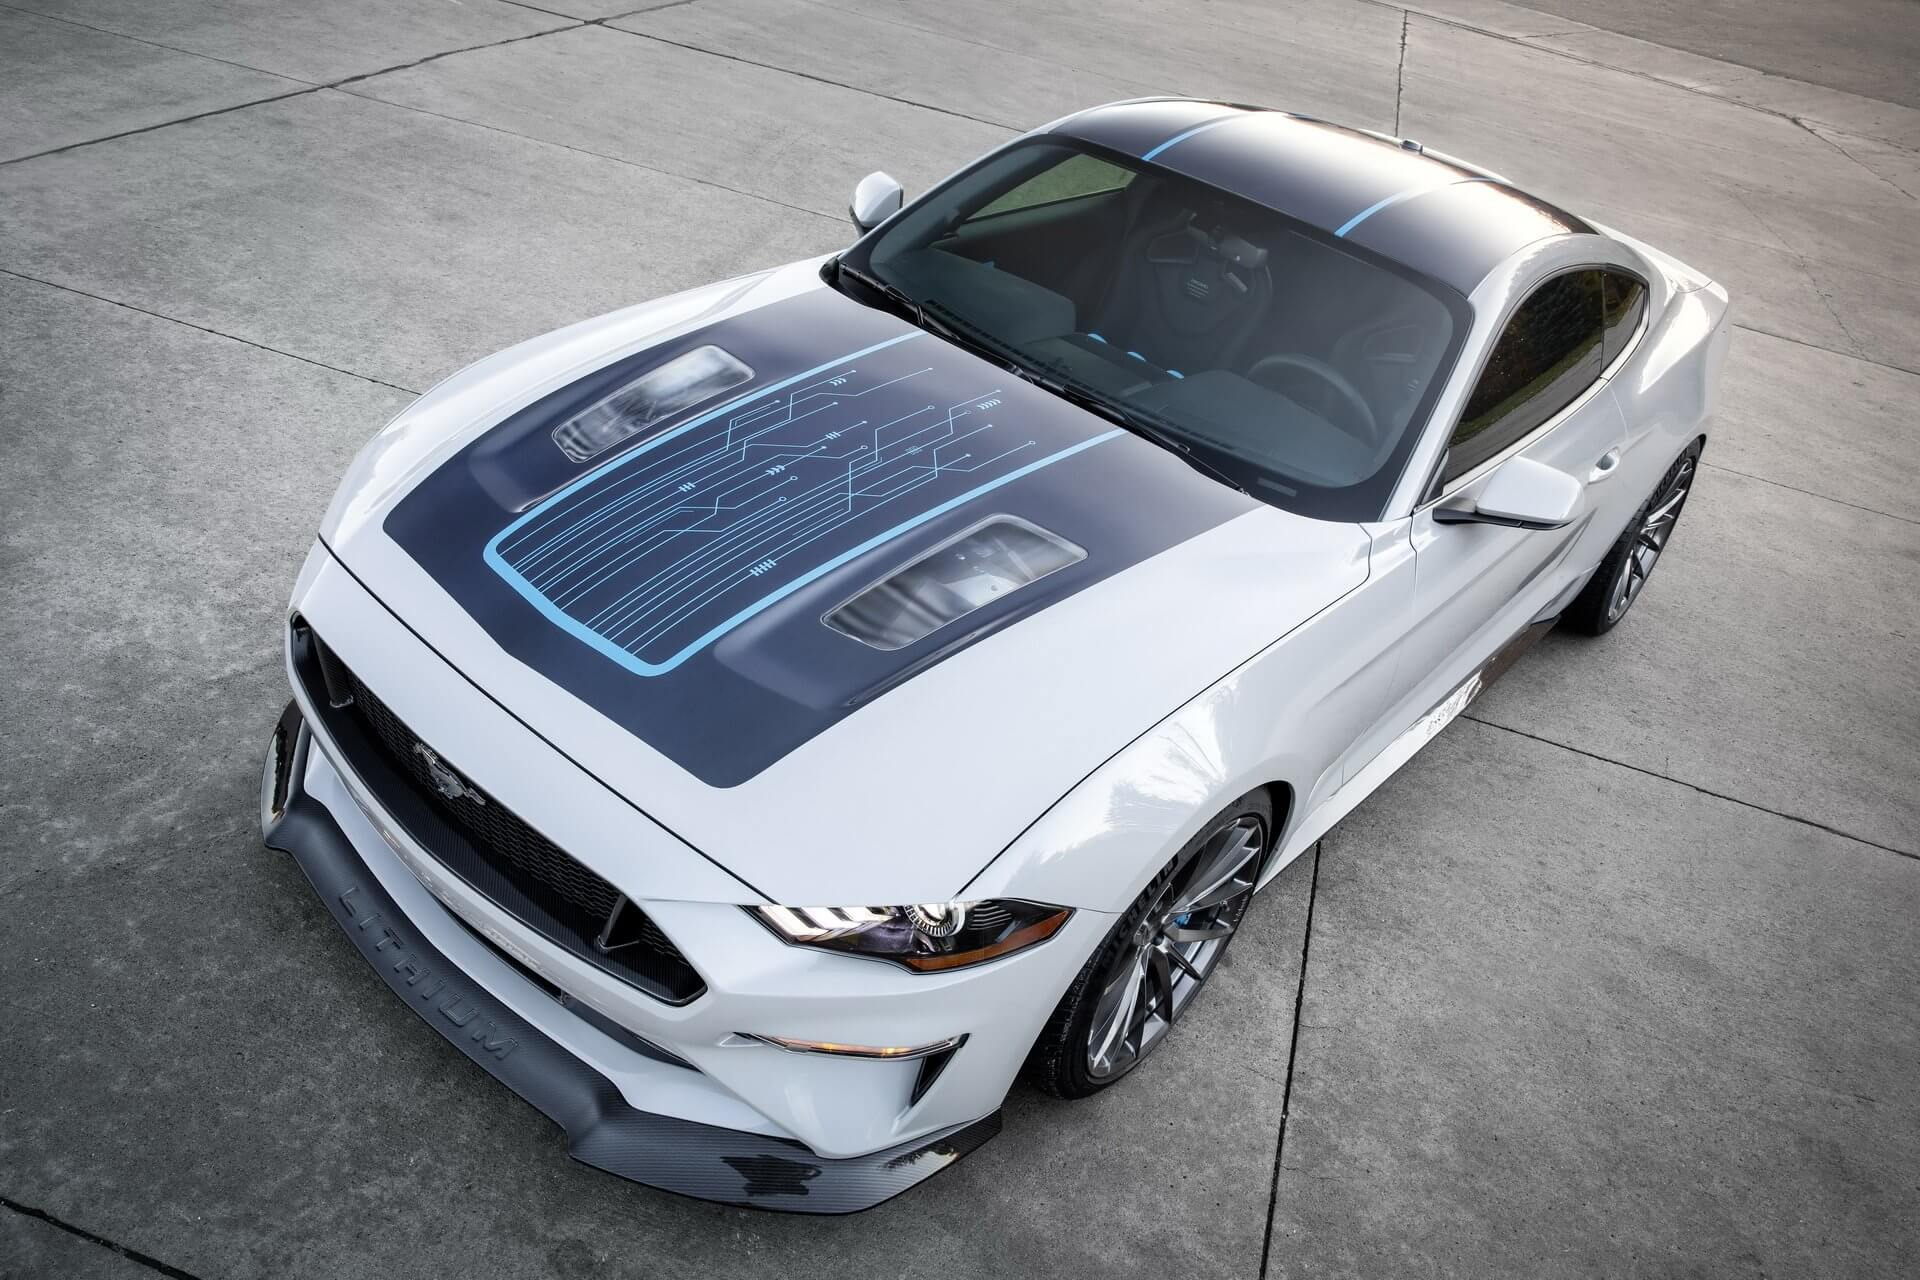 Ford Mustang Electric: frontal